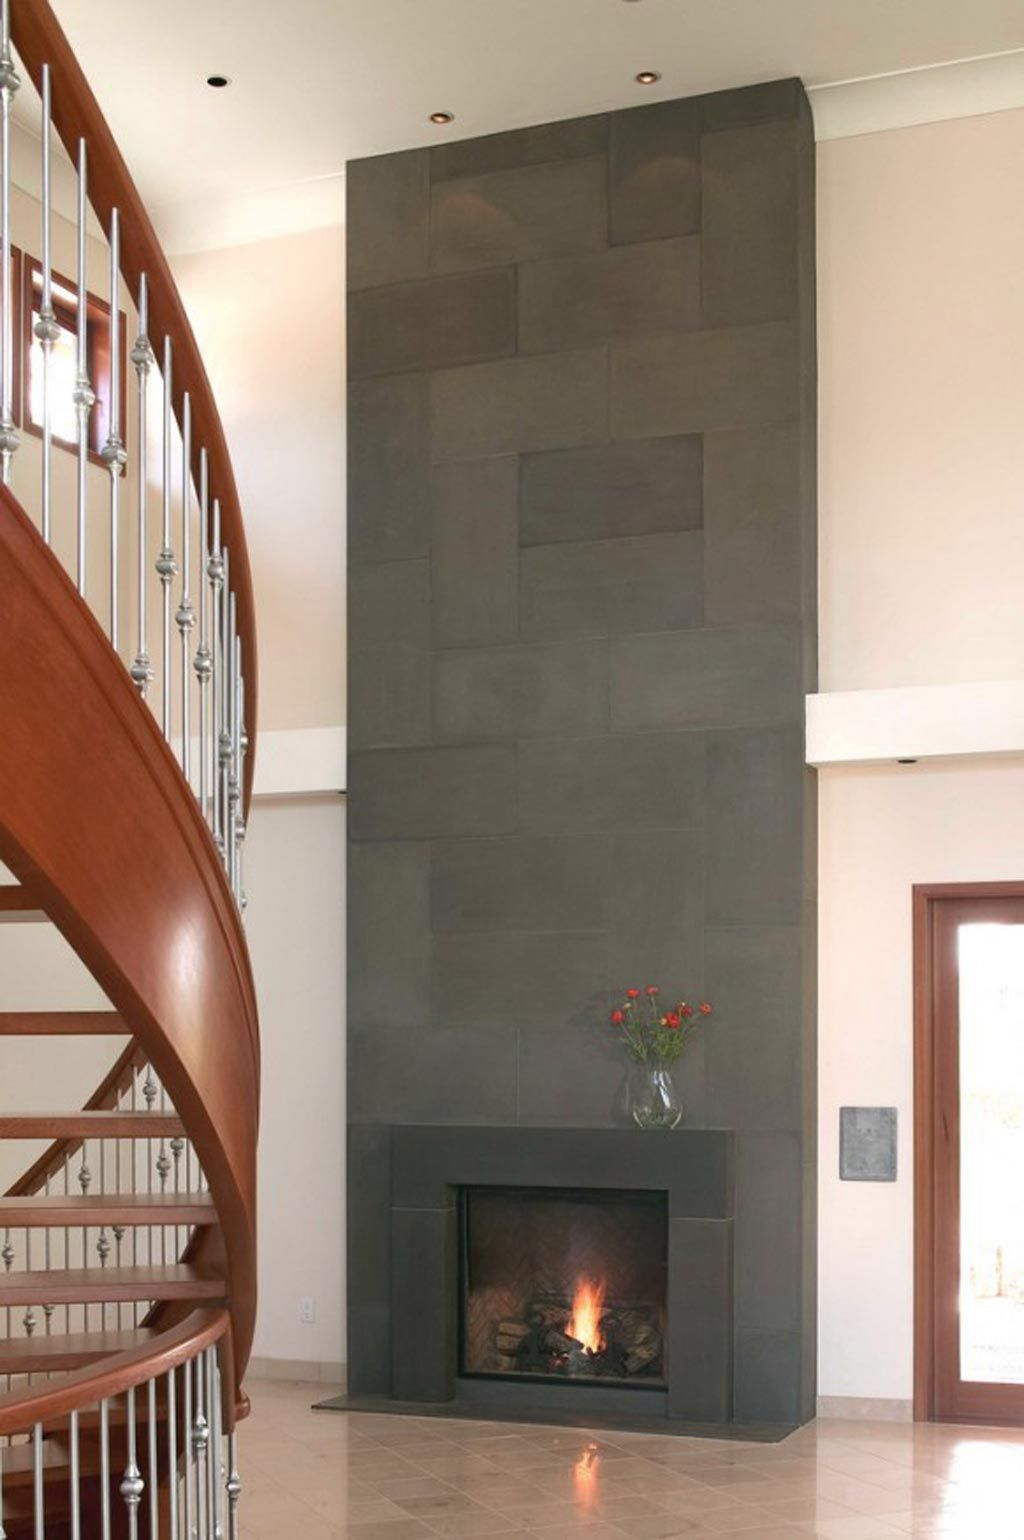 Modern Fireplace Surrounds Fireplace Surround Ideas Modern Block Cast Concrete Fireplace Hallway Contemporary Fireplace Modern Fireplace Fireplace Surrounds